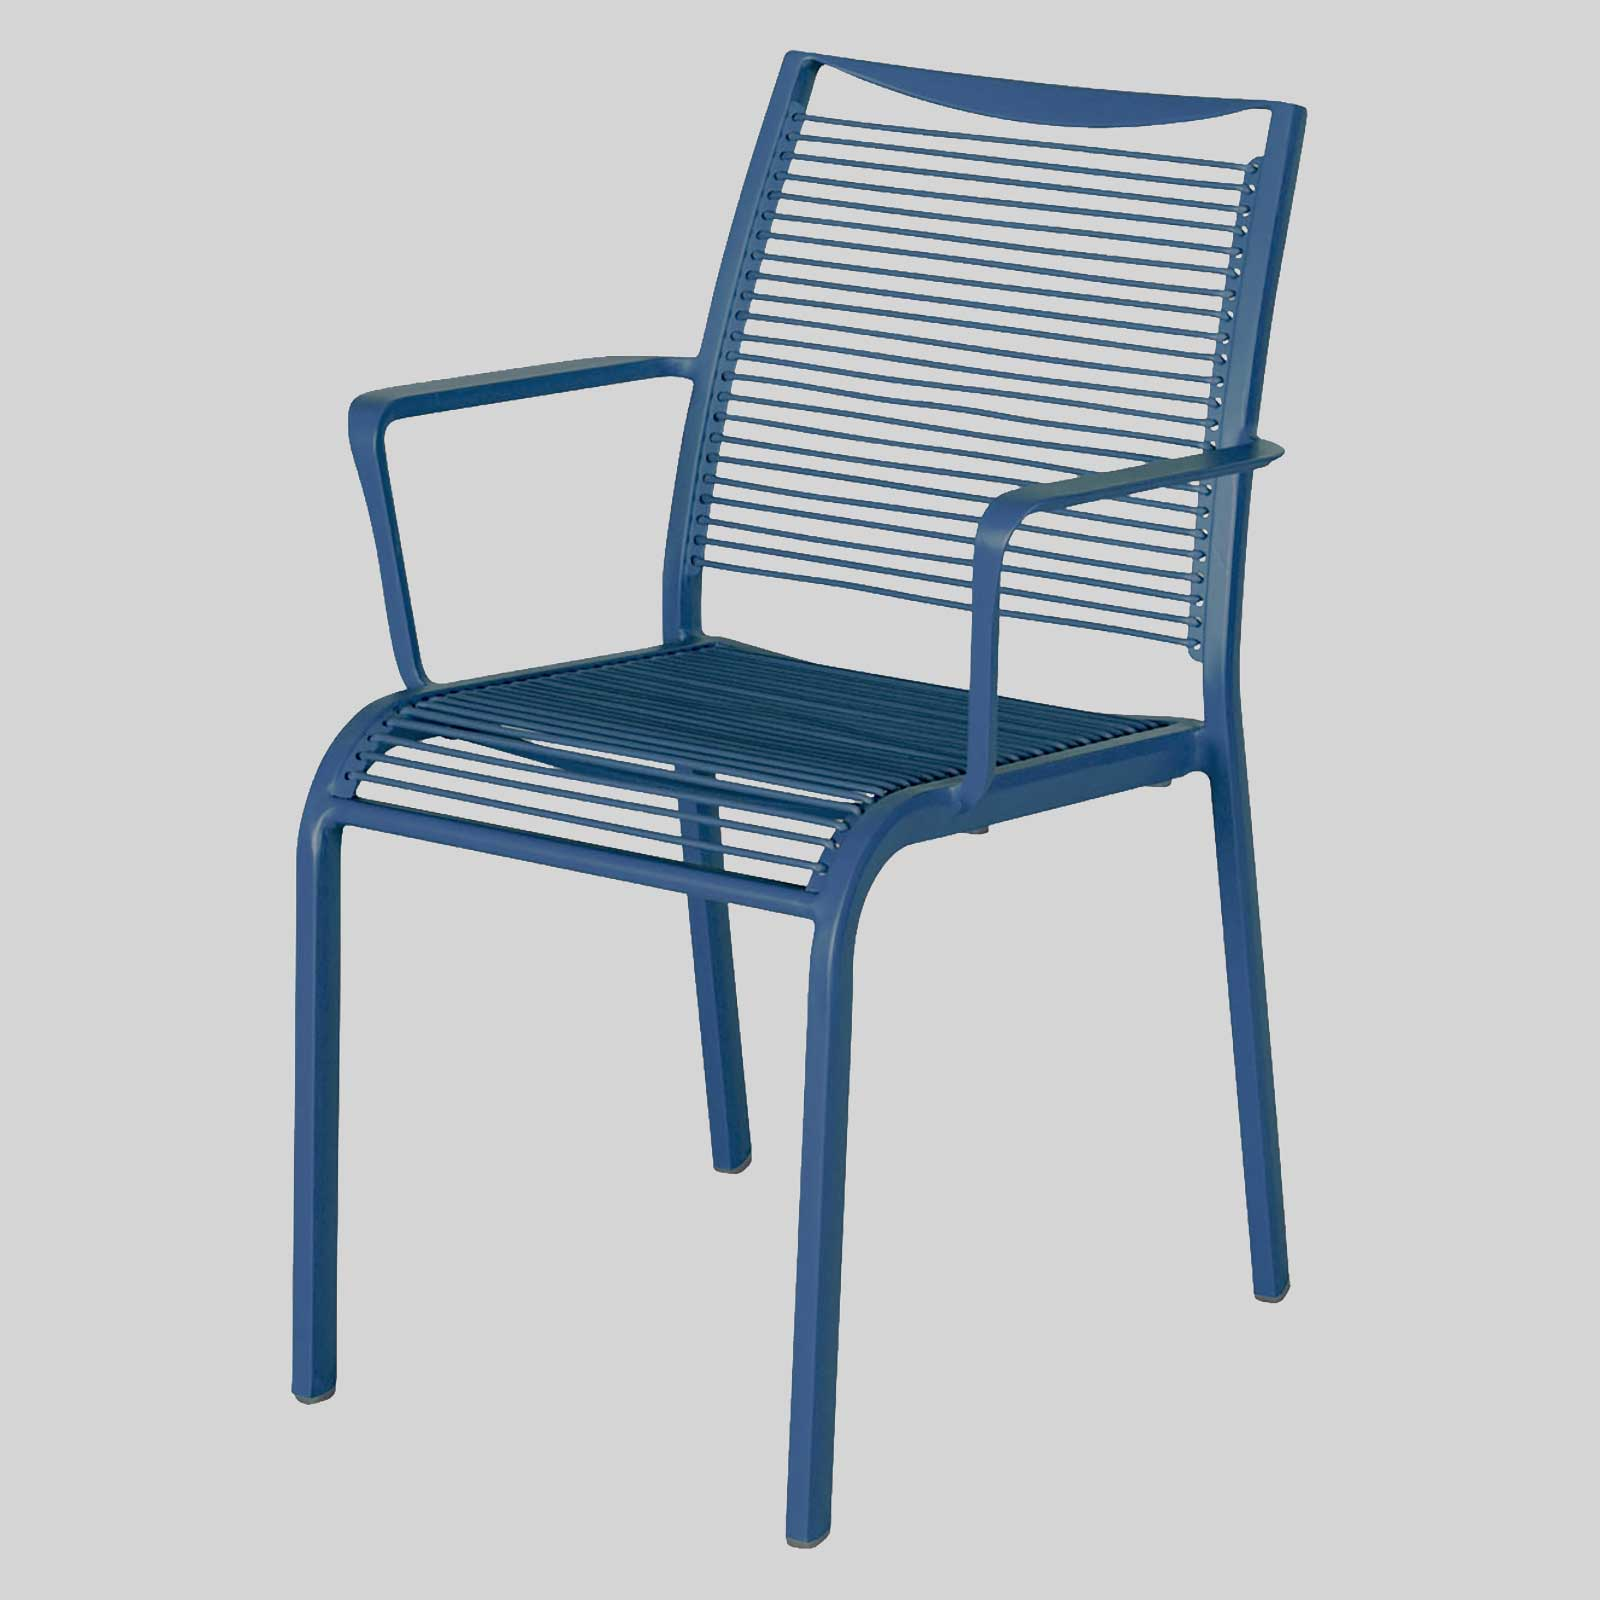 Waverly outdoor cafe chairs with arms blue